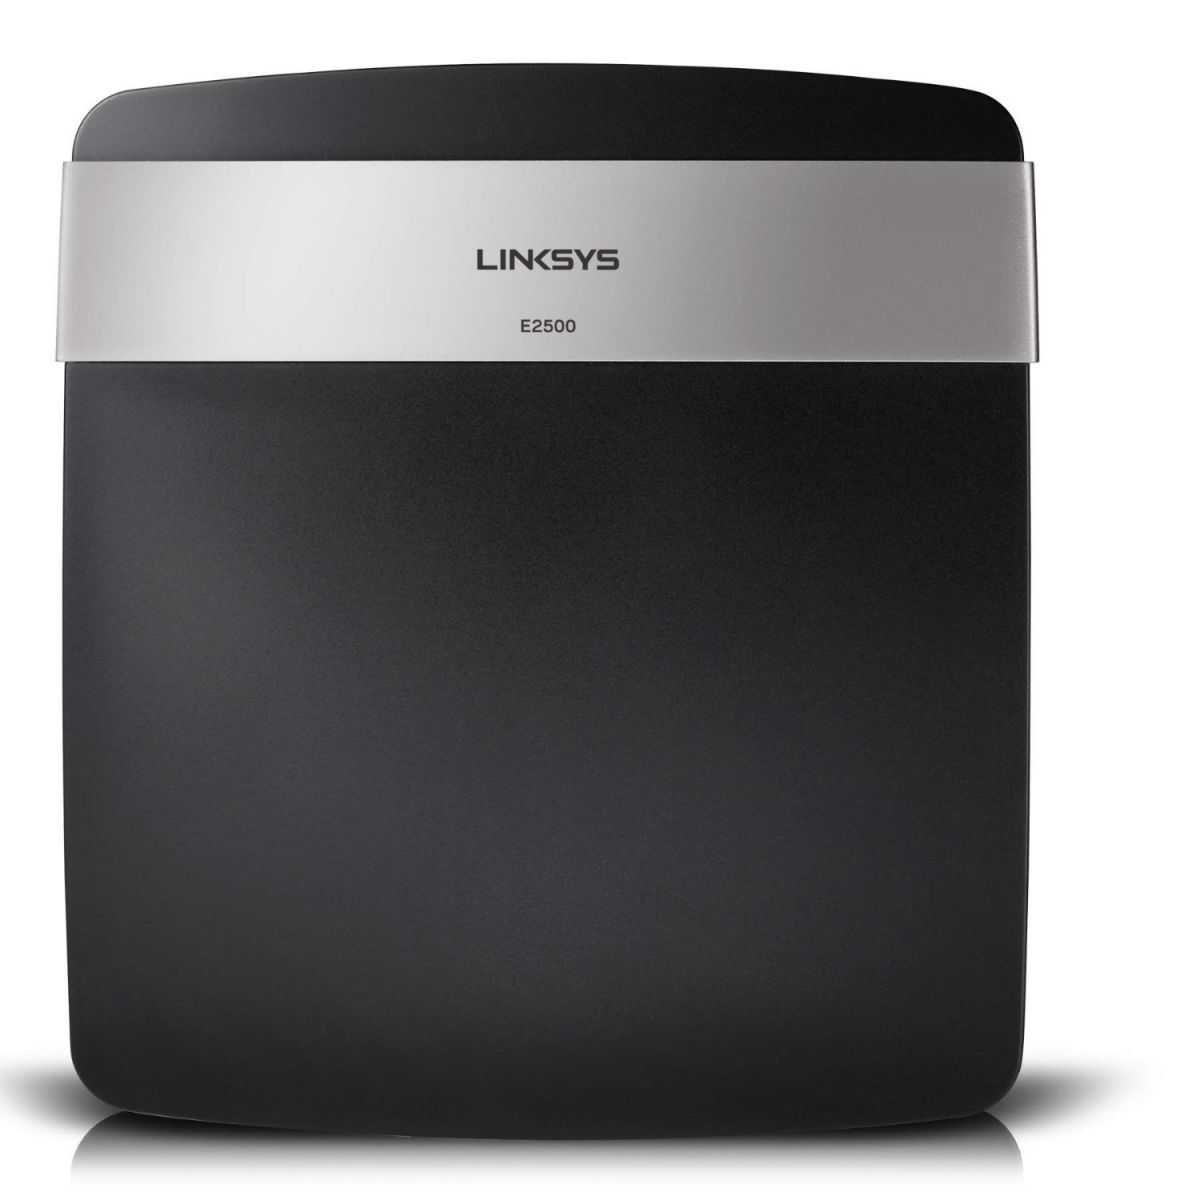 Roteador Wireless Linksys E2500 600mbps Dual Band N600 USB  - TNTinfo Loja